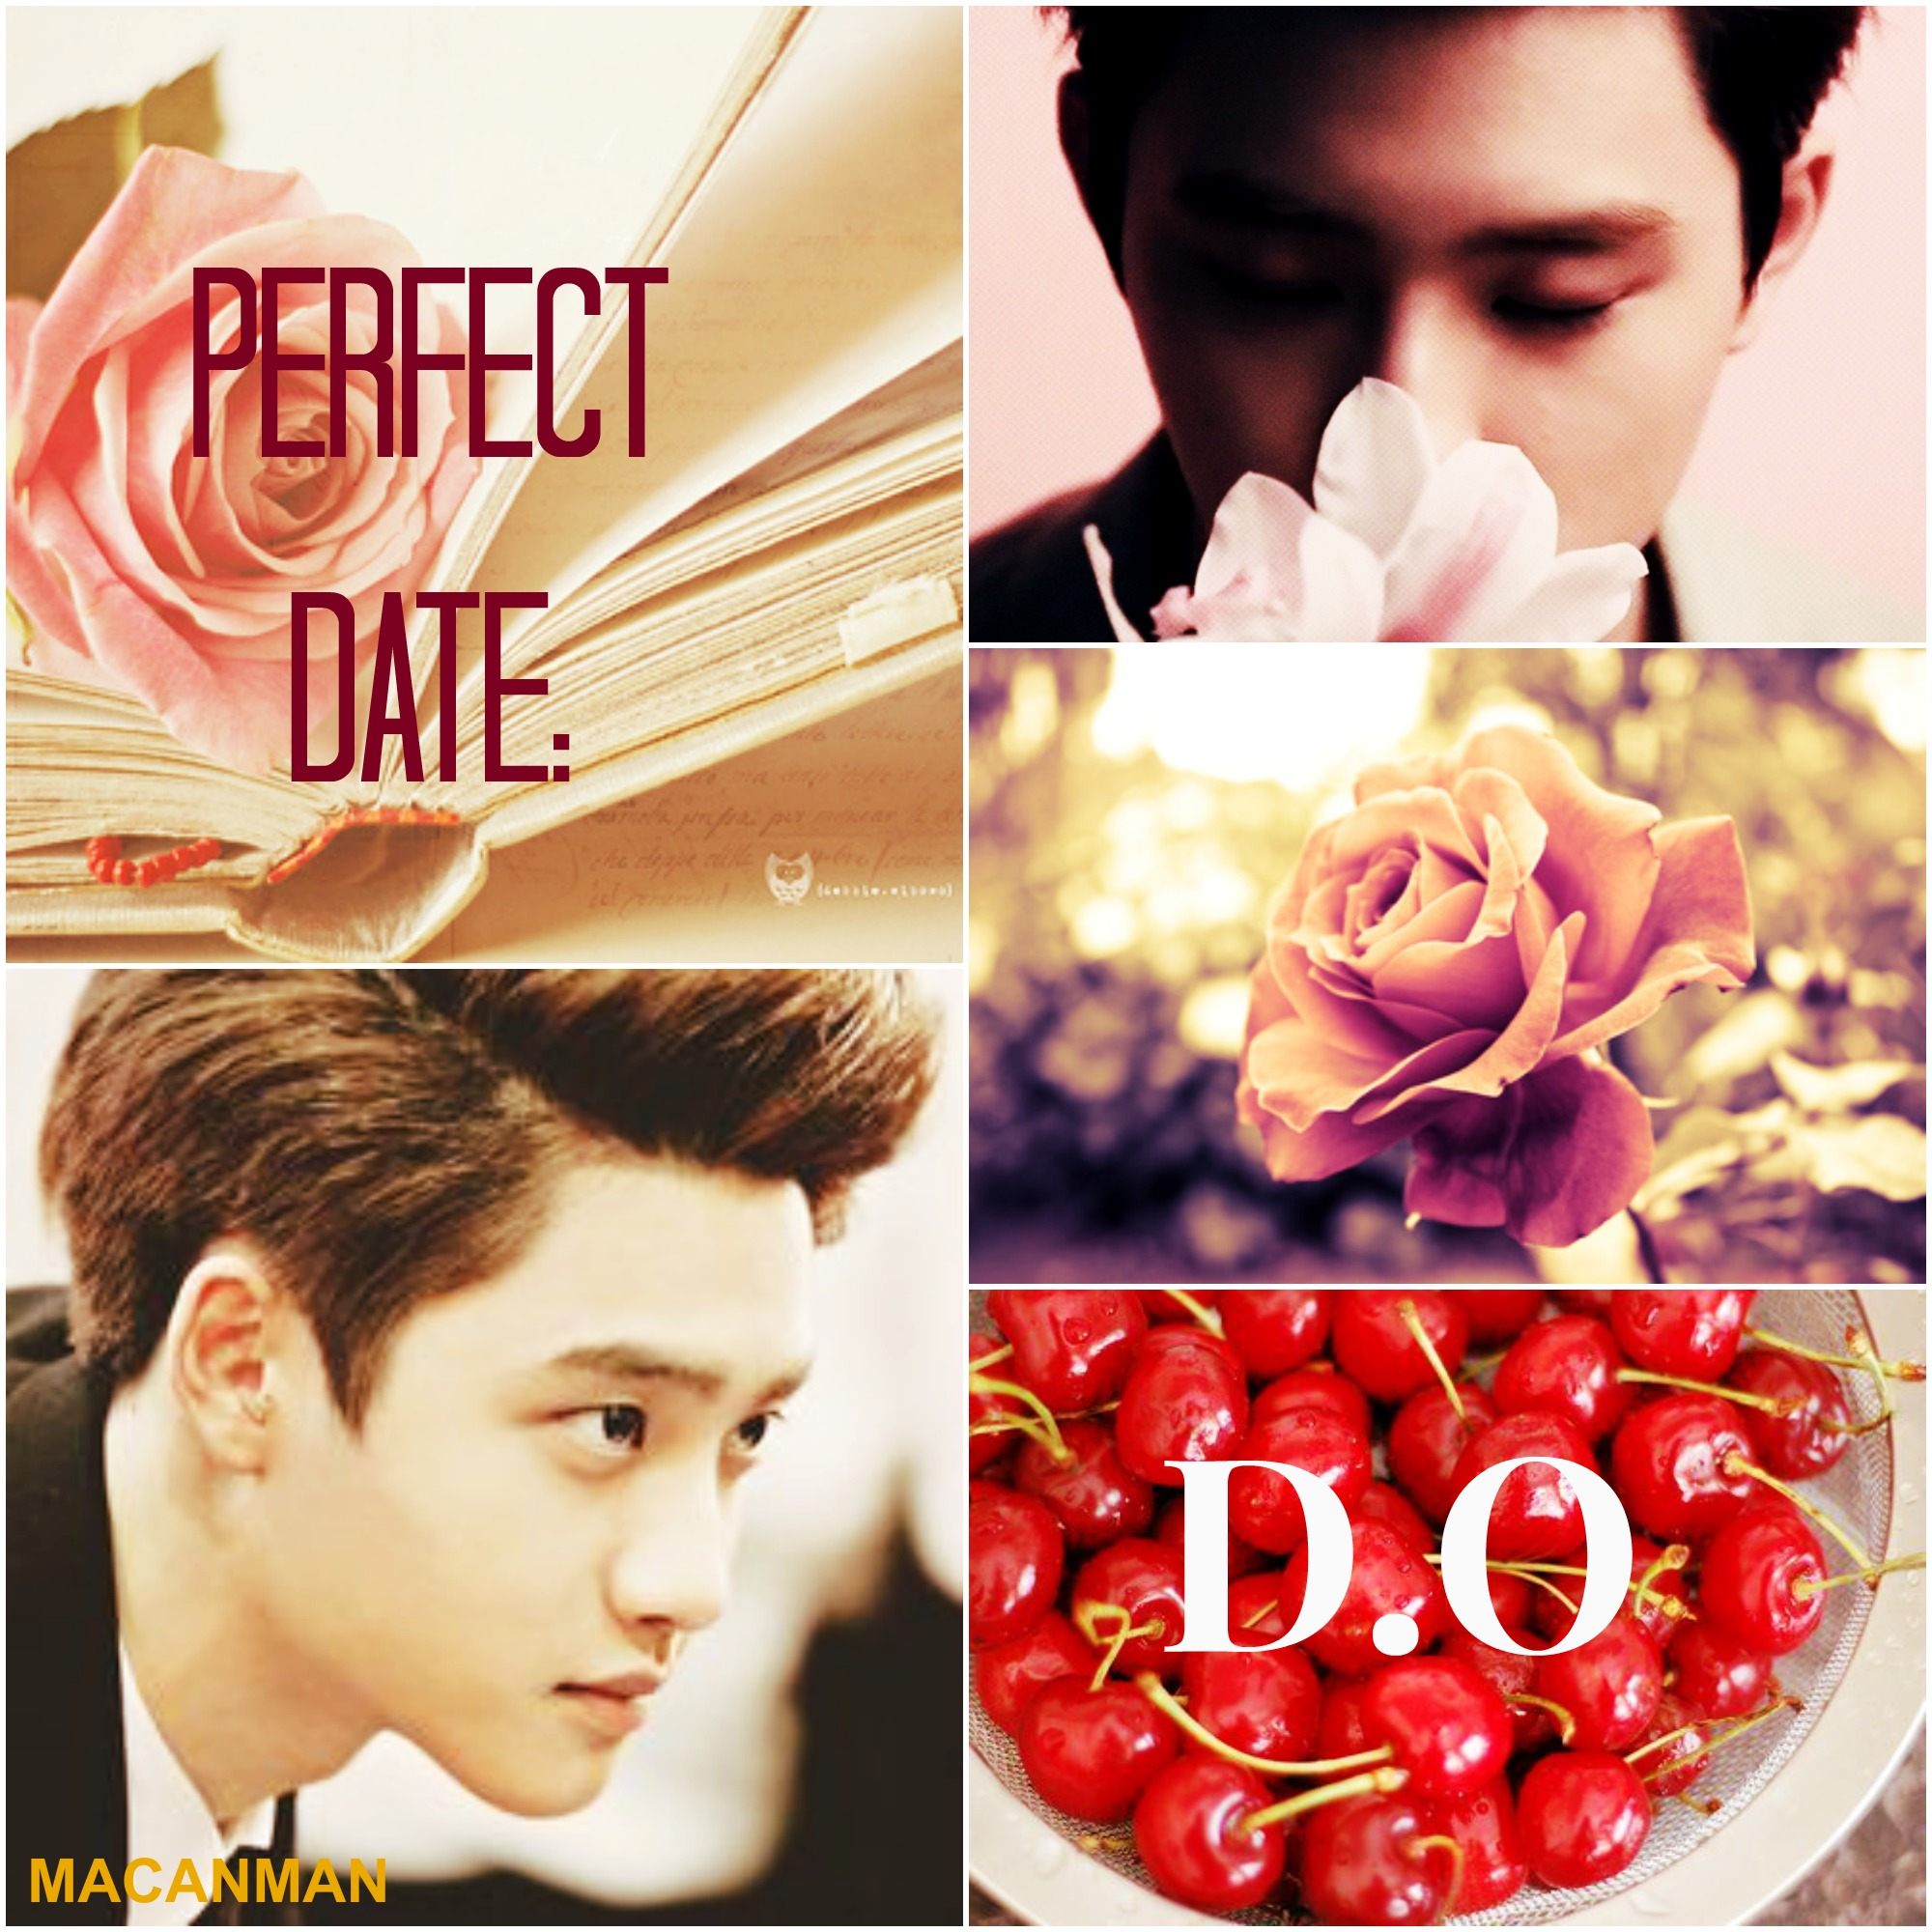 D.o dating